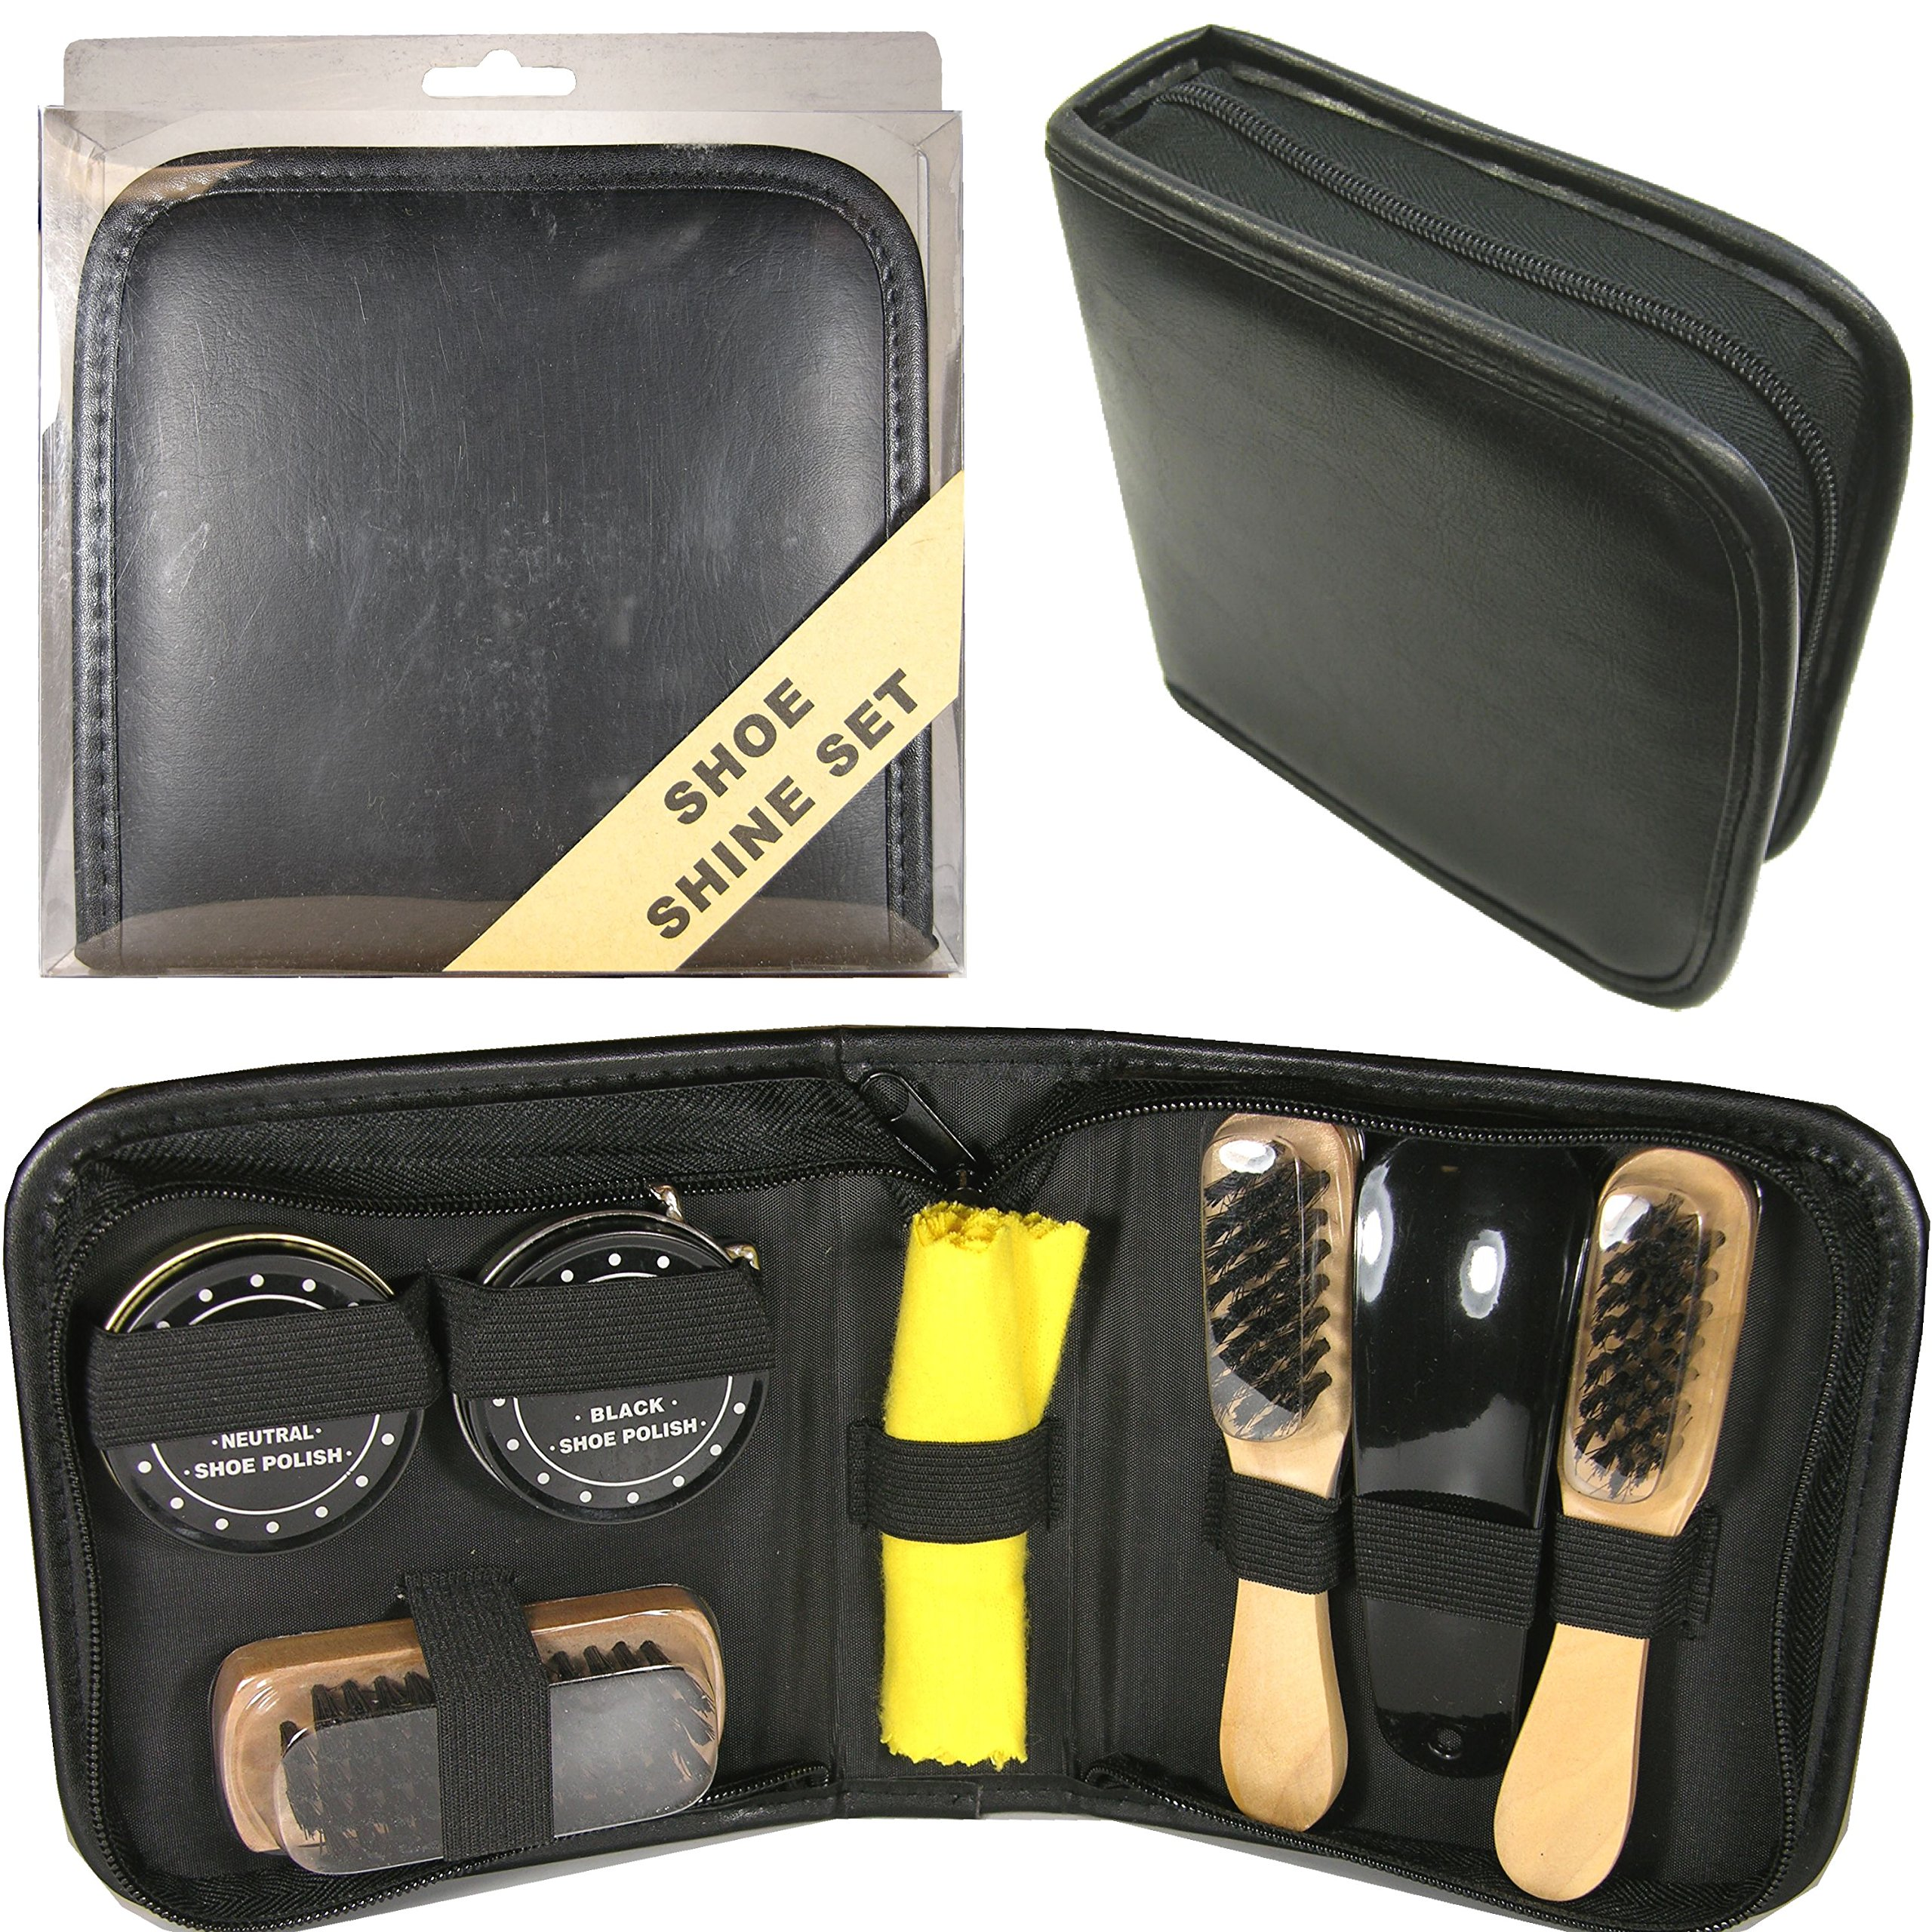 S5041SQ Deluxe Travel Shoe Shine Kit103063-NF by FixtureDisplays (Image #1)